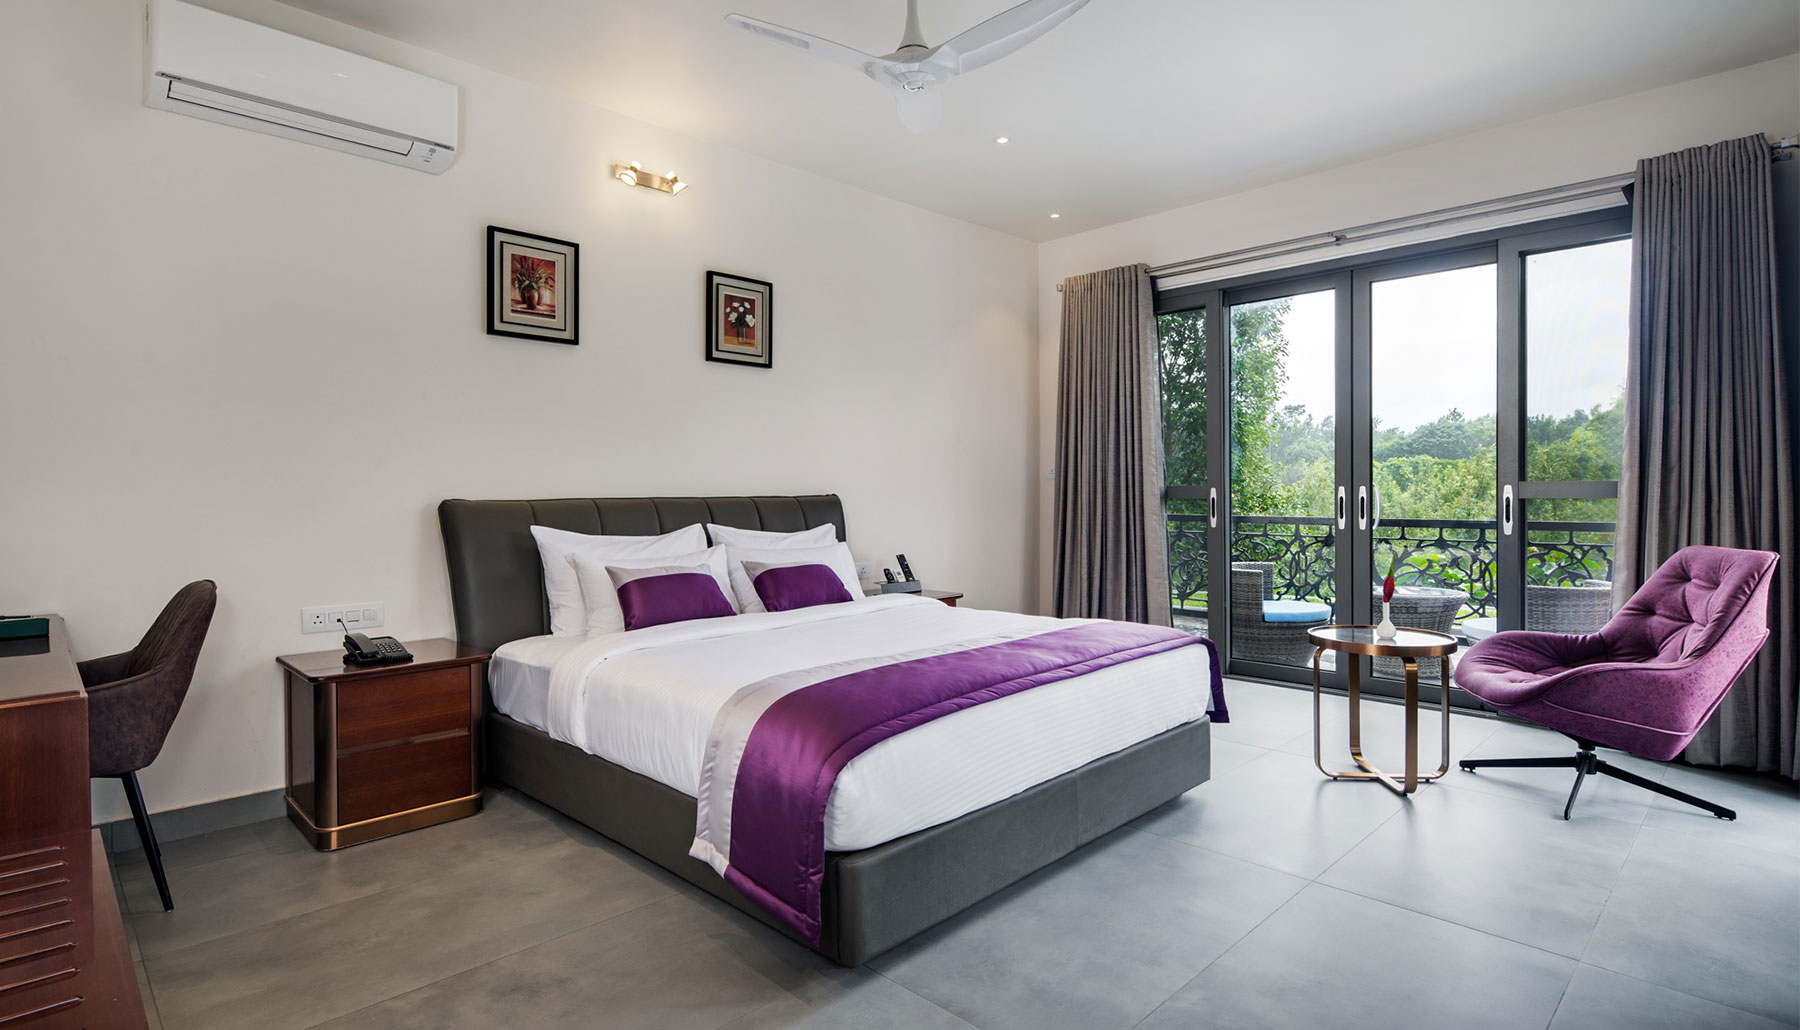 Vismita County / Best Hotels In Chikmagalur